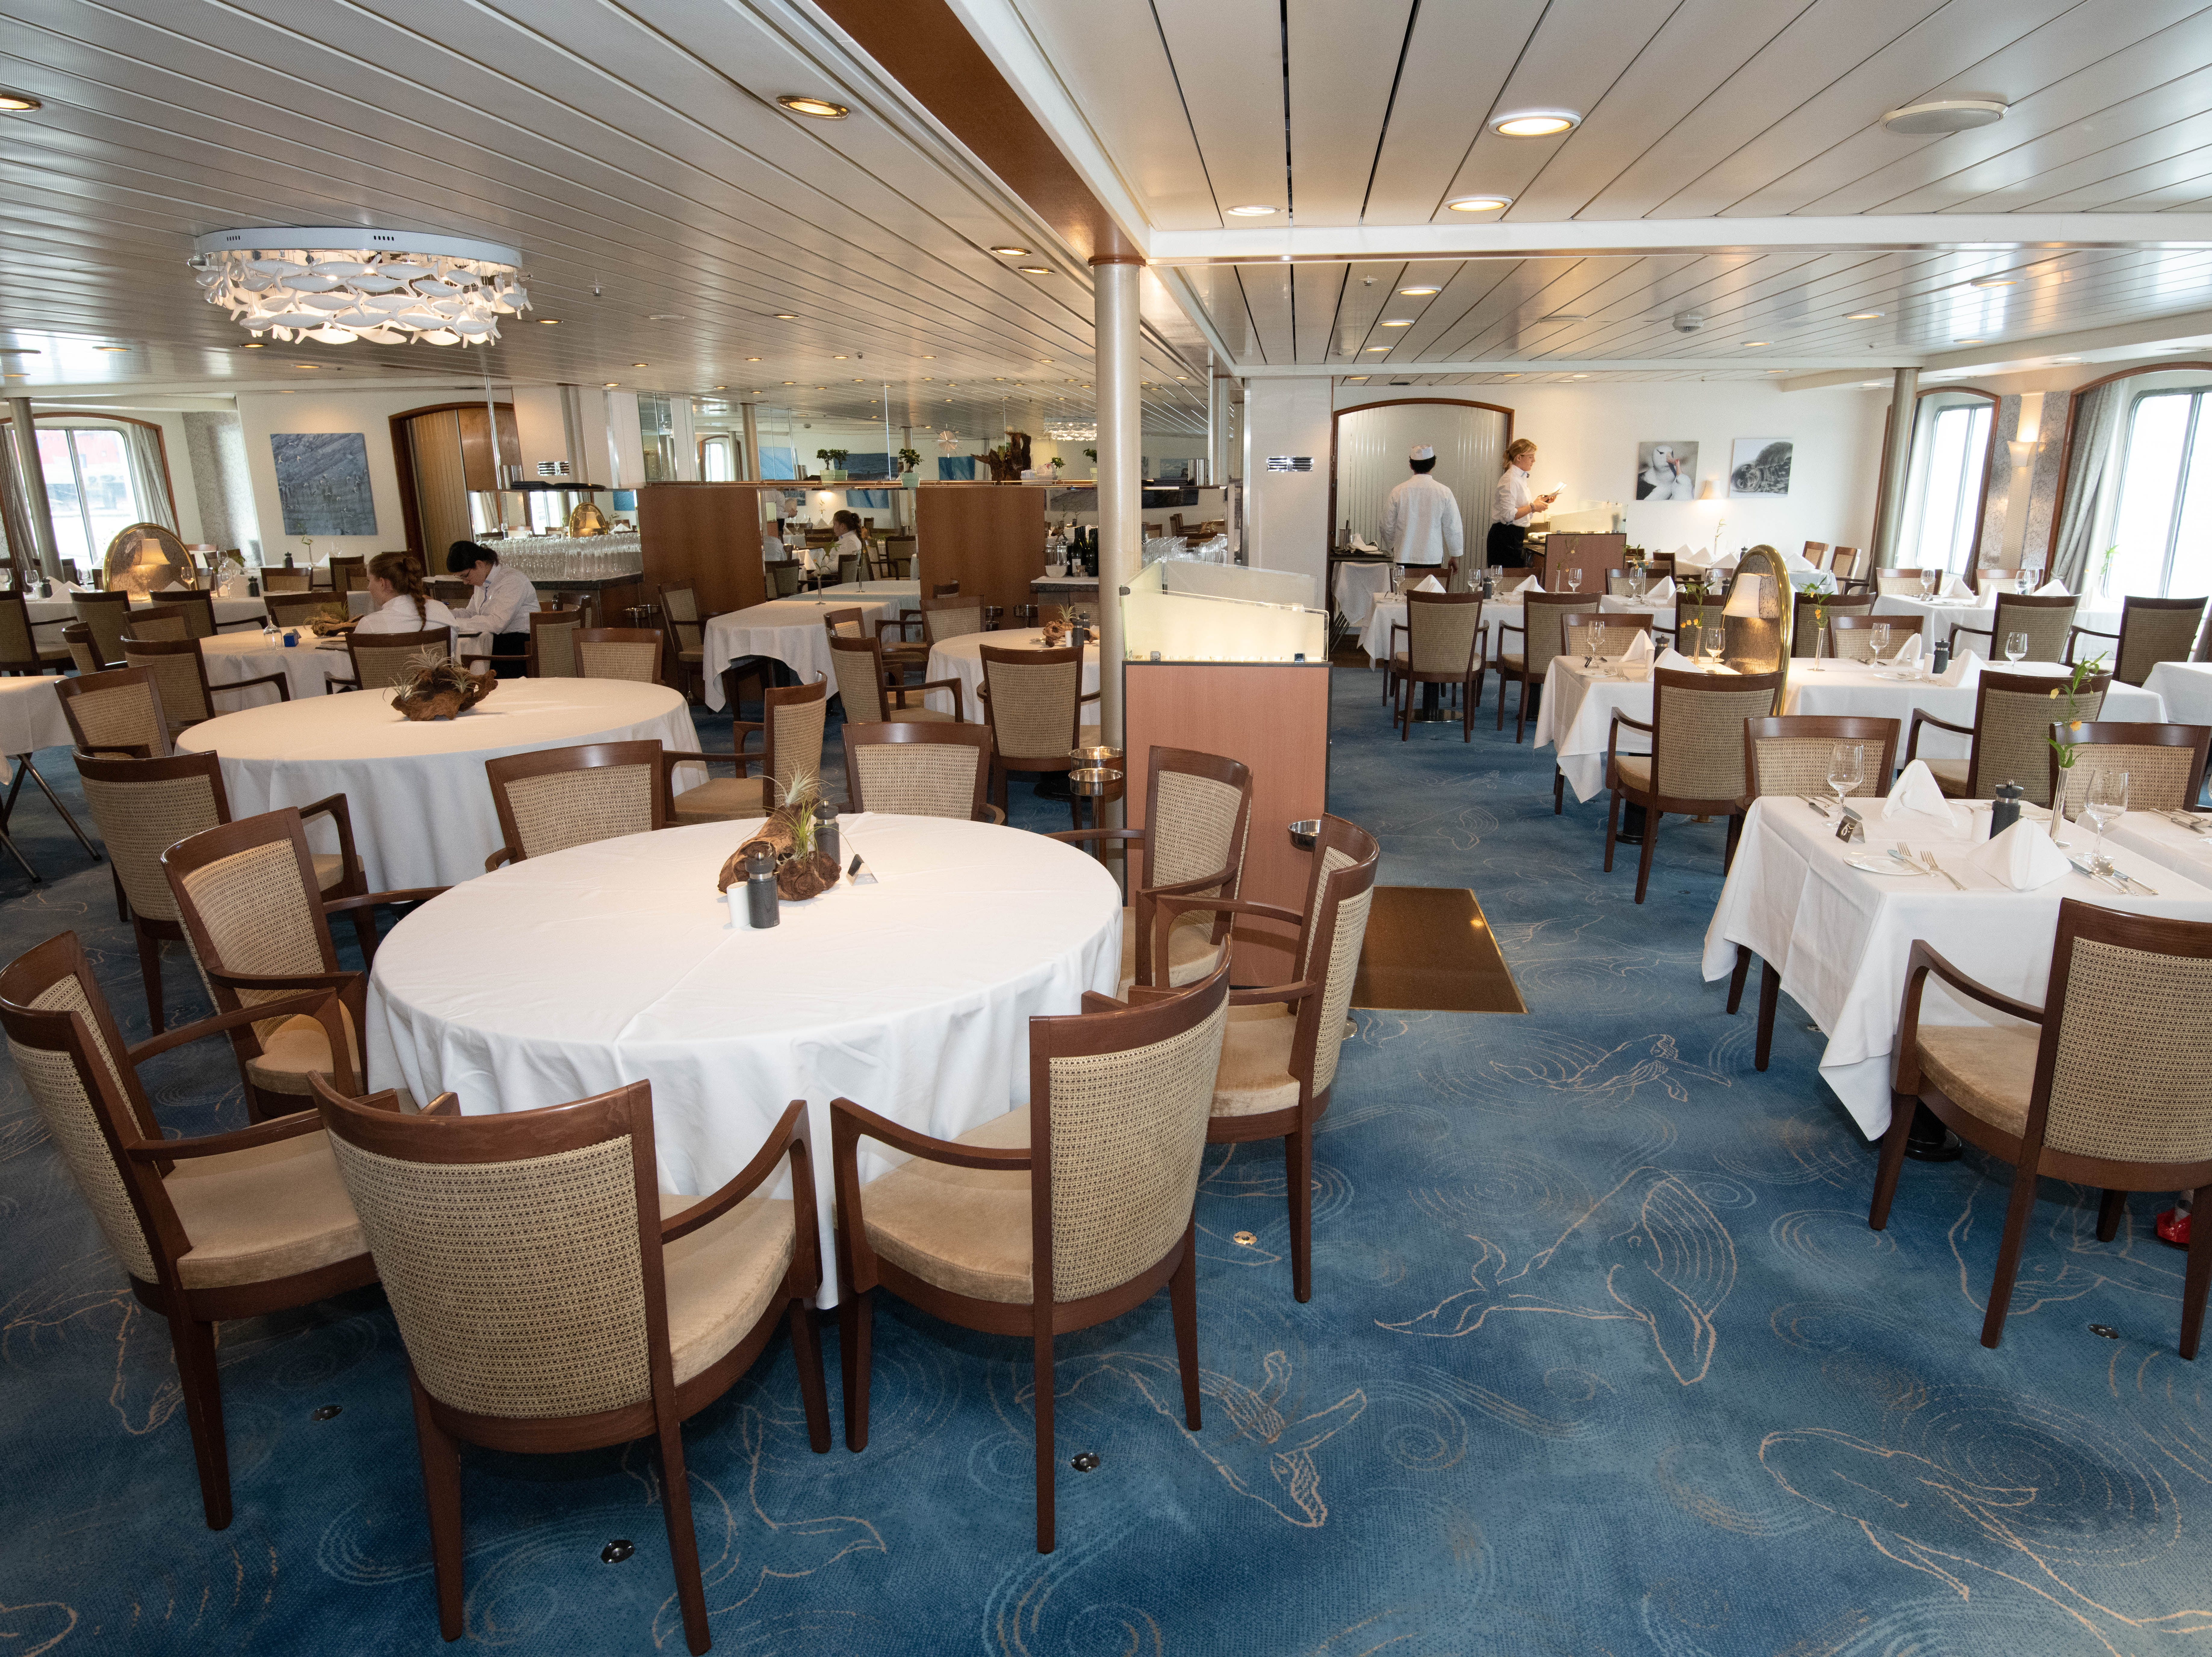 One deck down from the Bremen Club lounge at the back of the ship is the ship's main restaurant. It can hold all of the passengers on the vessel at once and is open for breakfast, lunch and dinner.